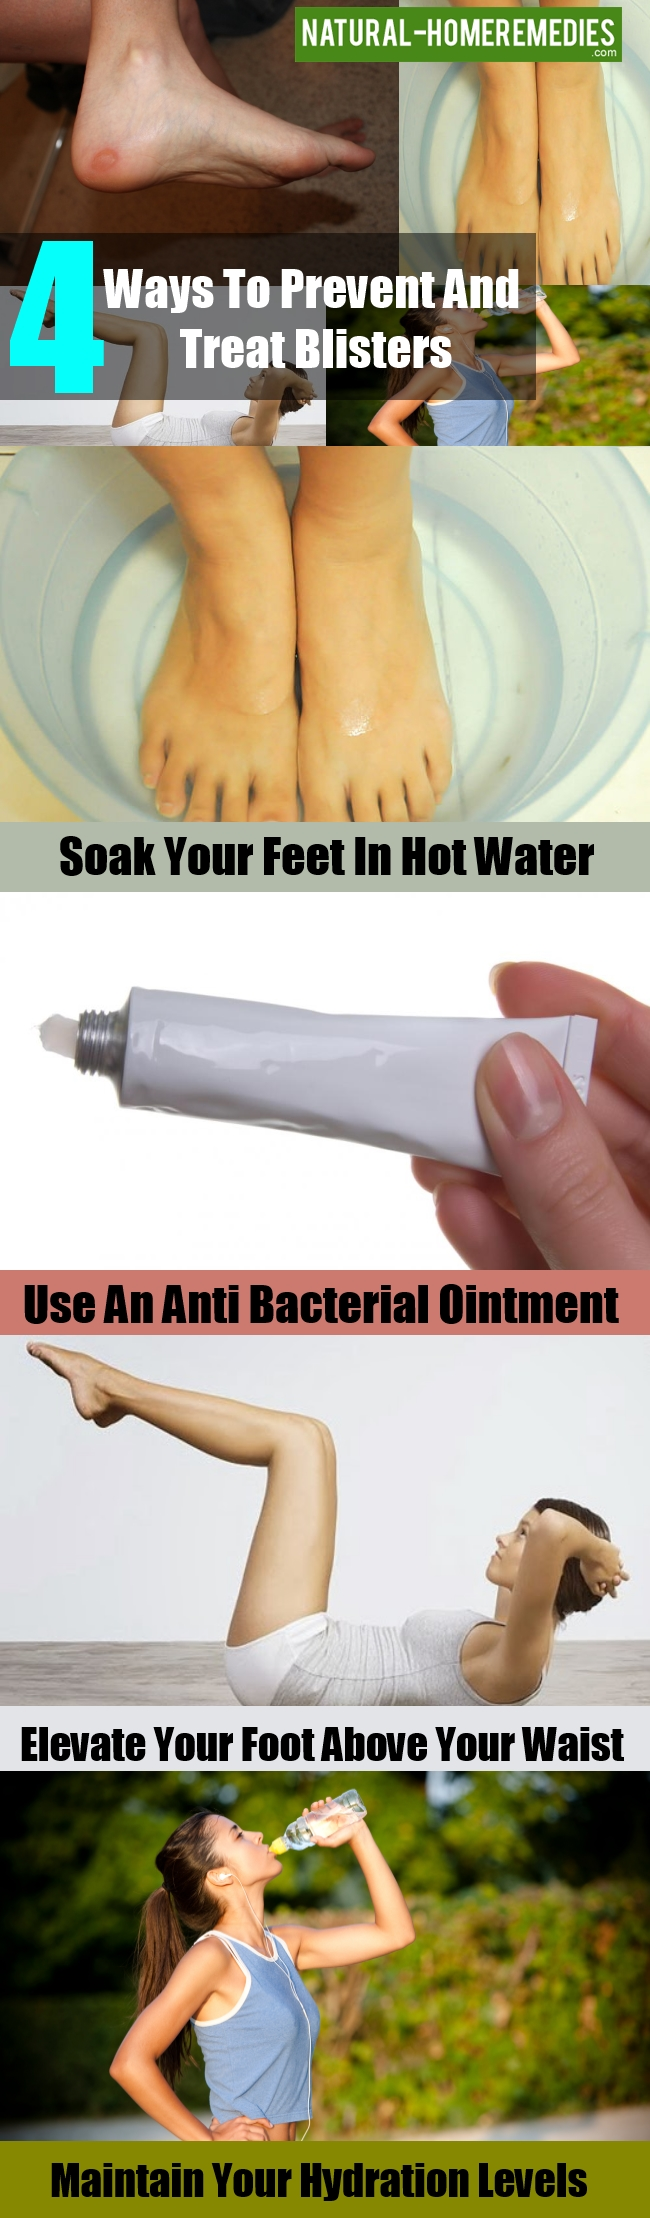 Ways To Prevent And Treat Blisters on Your Feet